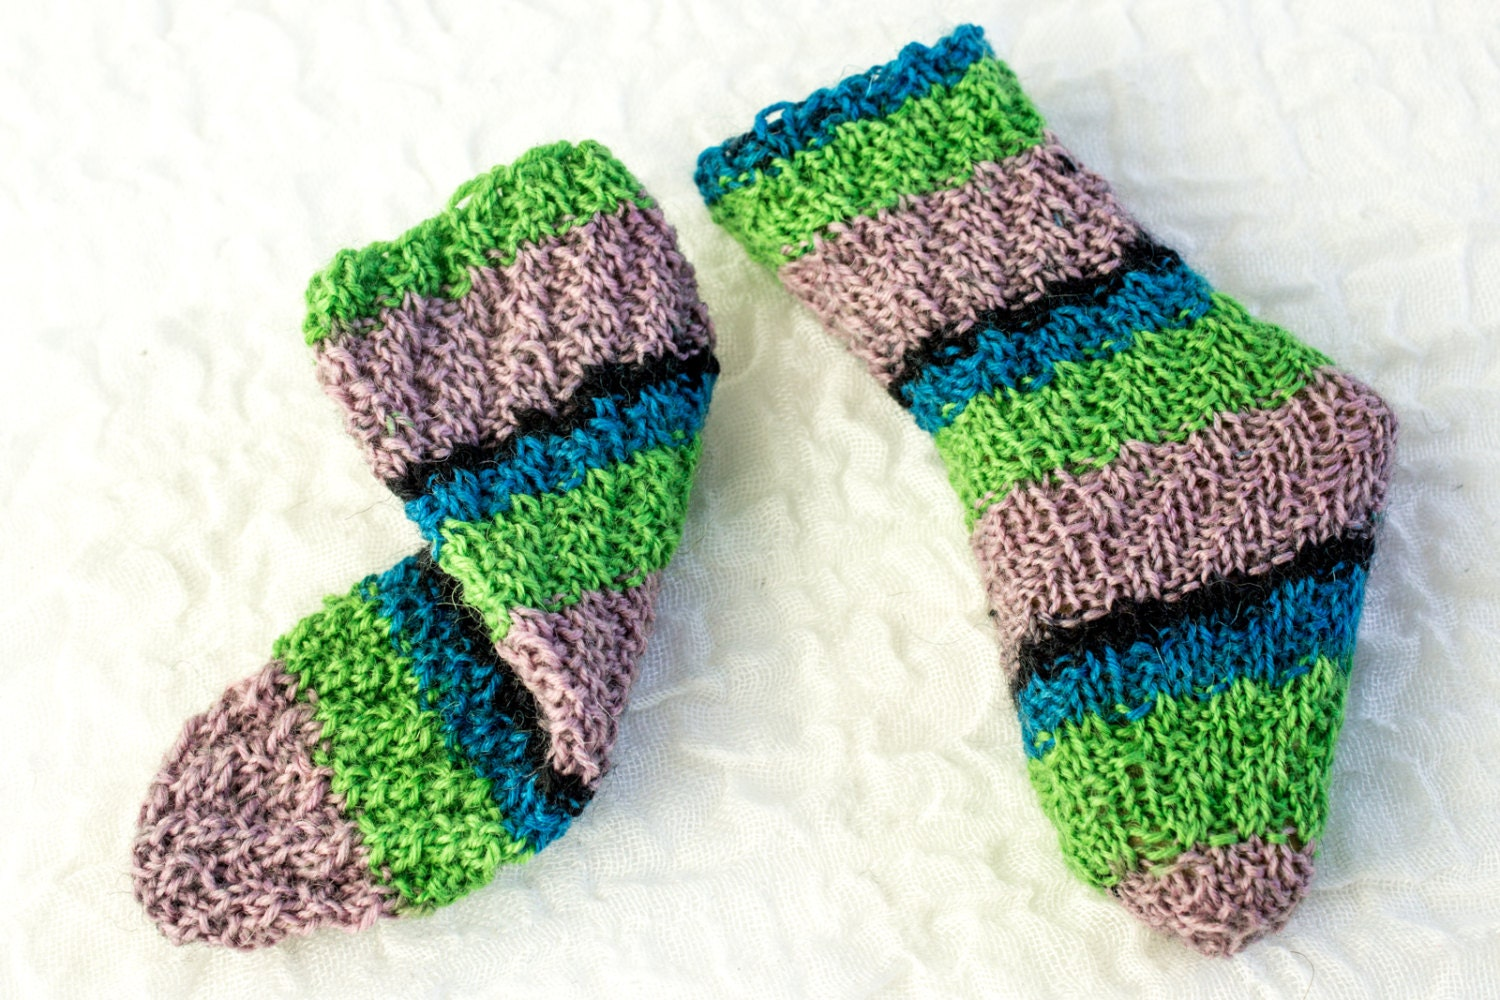 Knitting Tube Socks Free Pattern : KNITTING PATTERN Baby Socks Tube Socks Knitted Magic Spiral